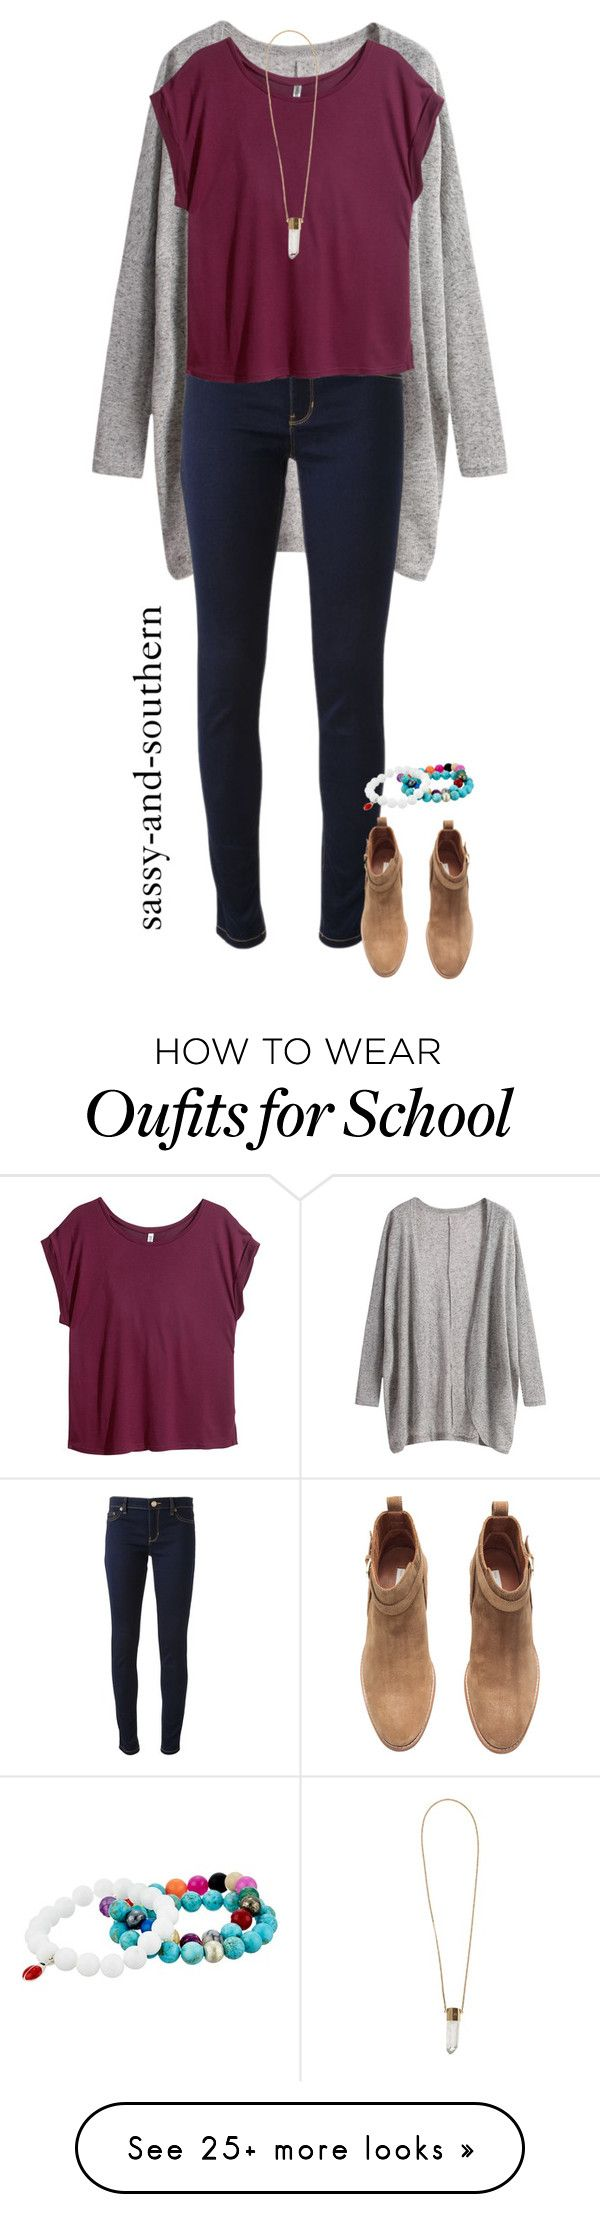 School Outfit By Sassy And Southern On Polyvore